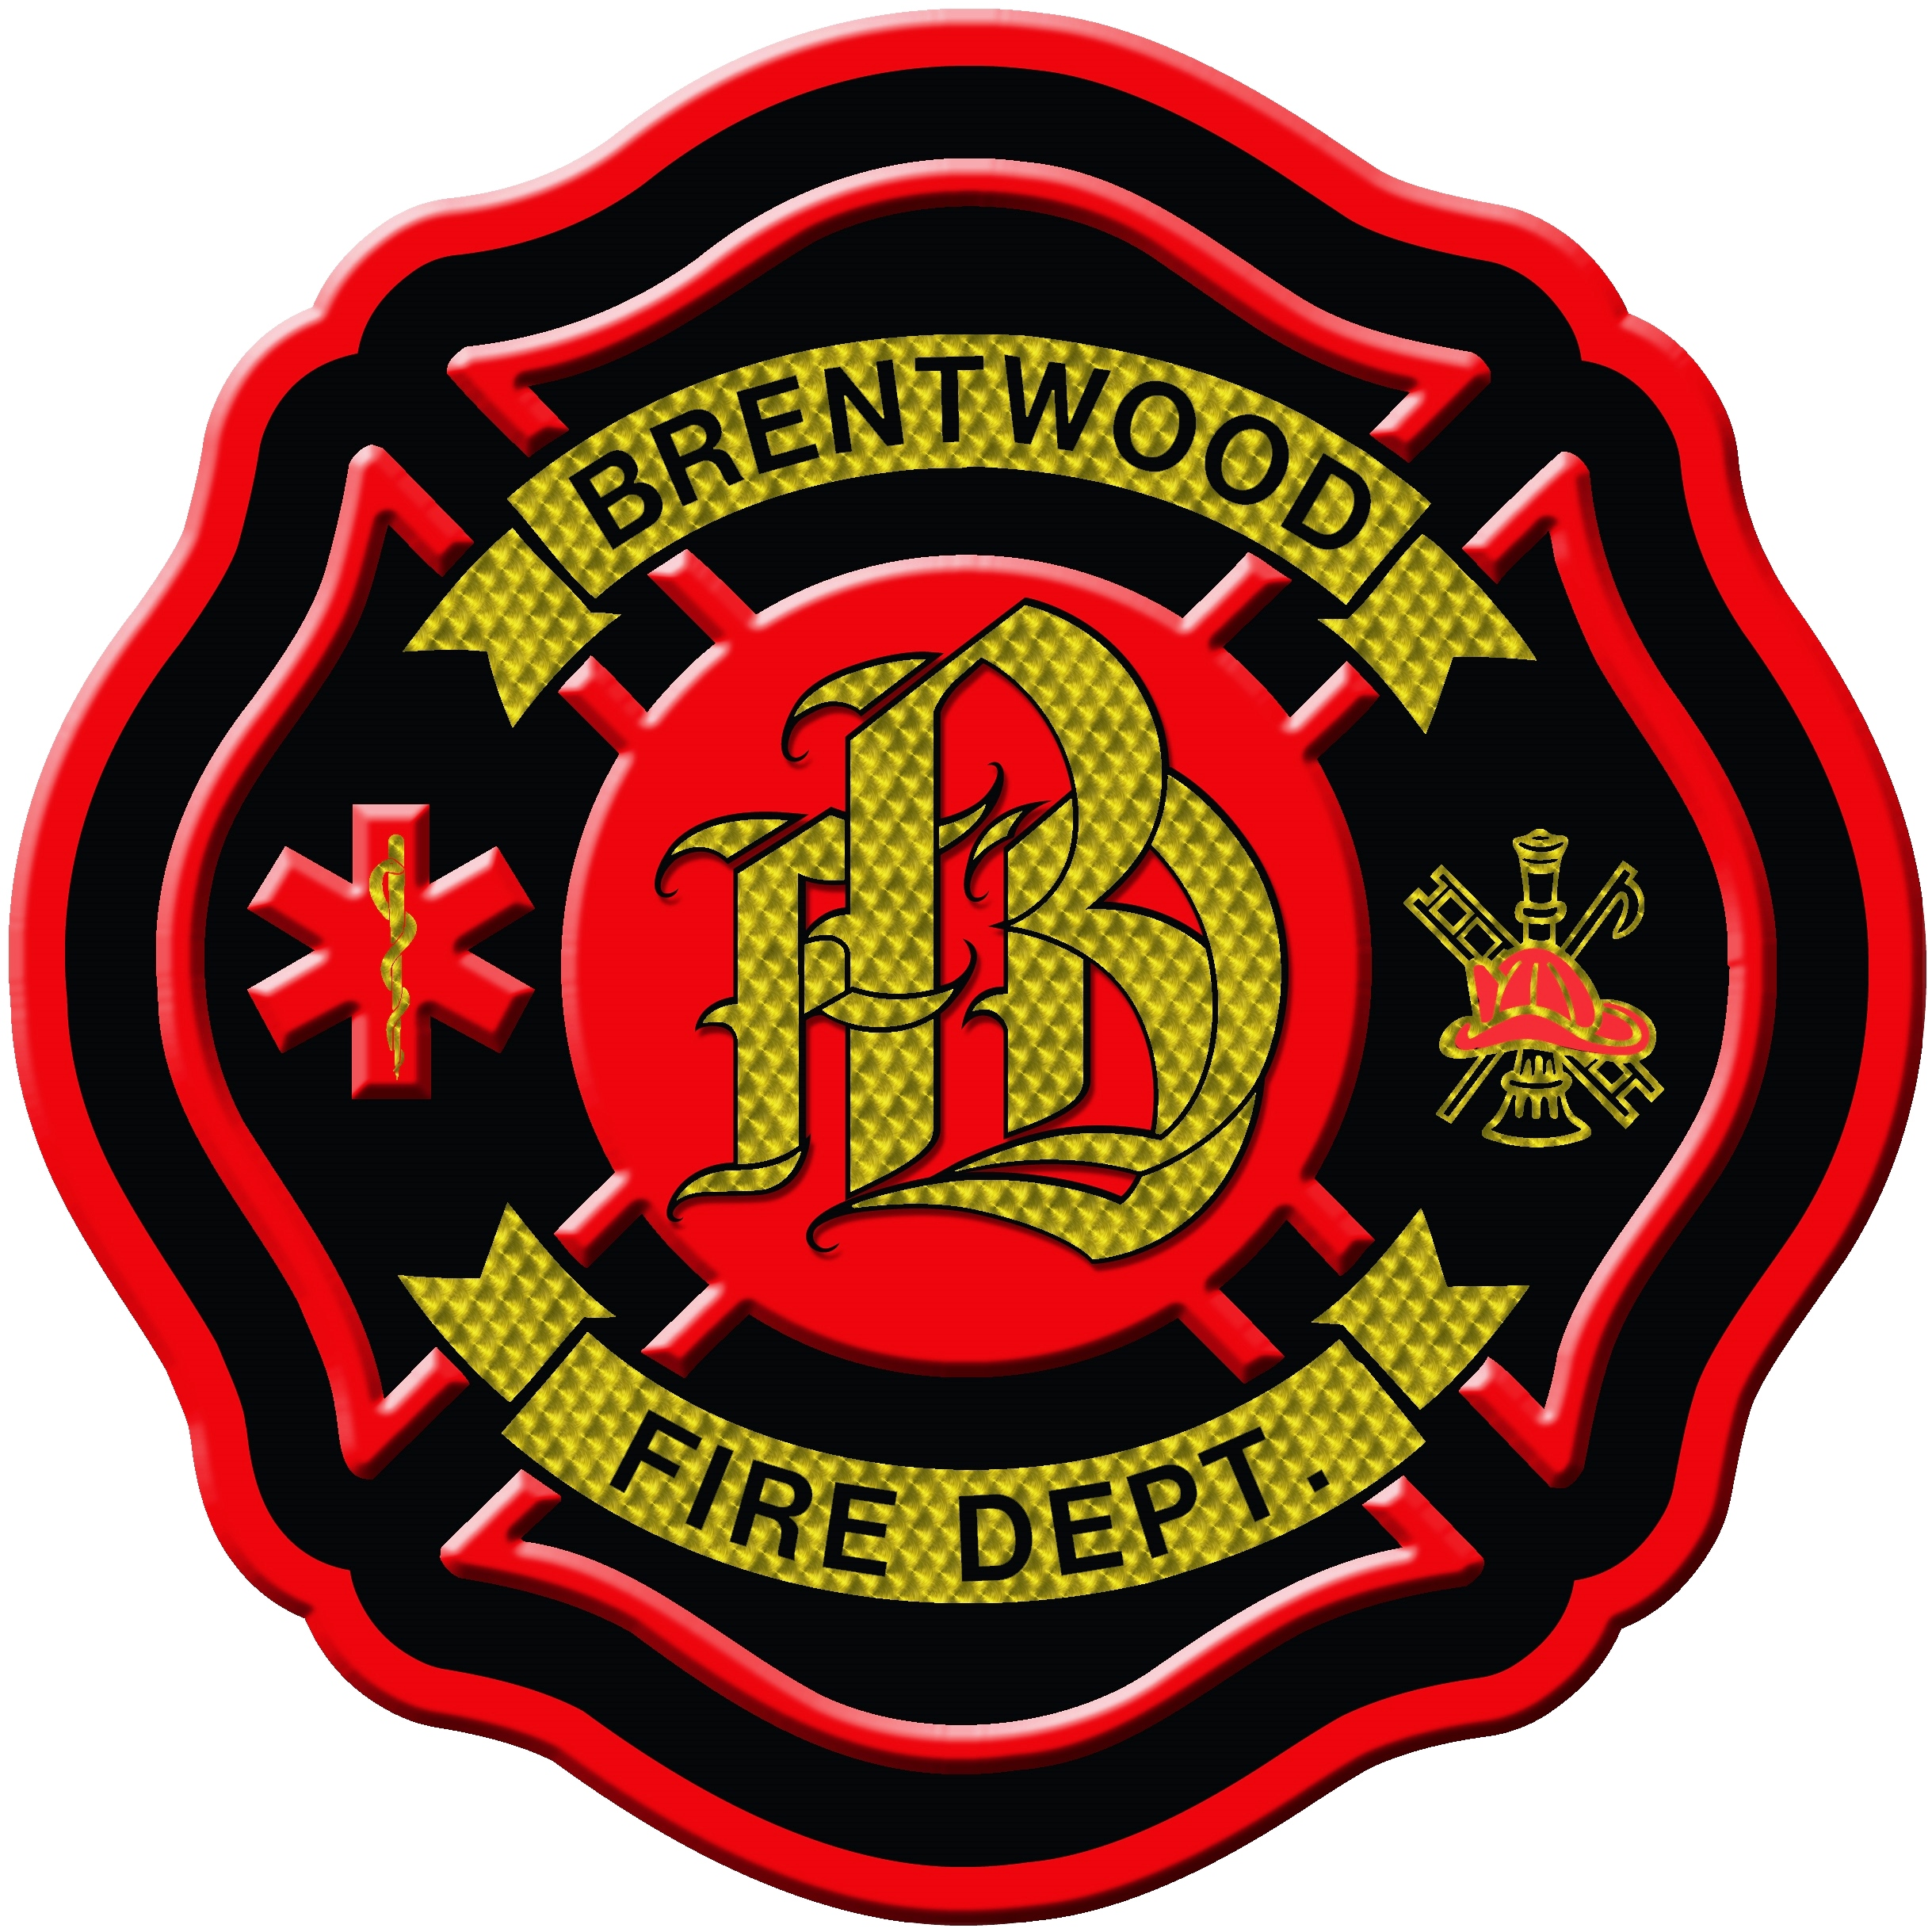 Brentwood Fire Department Seal